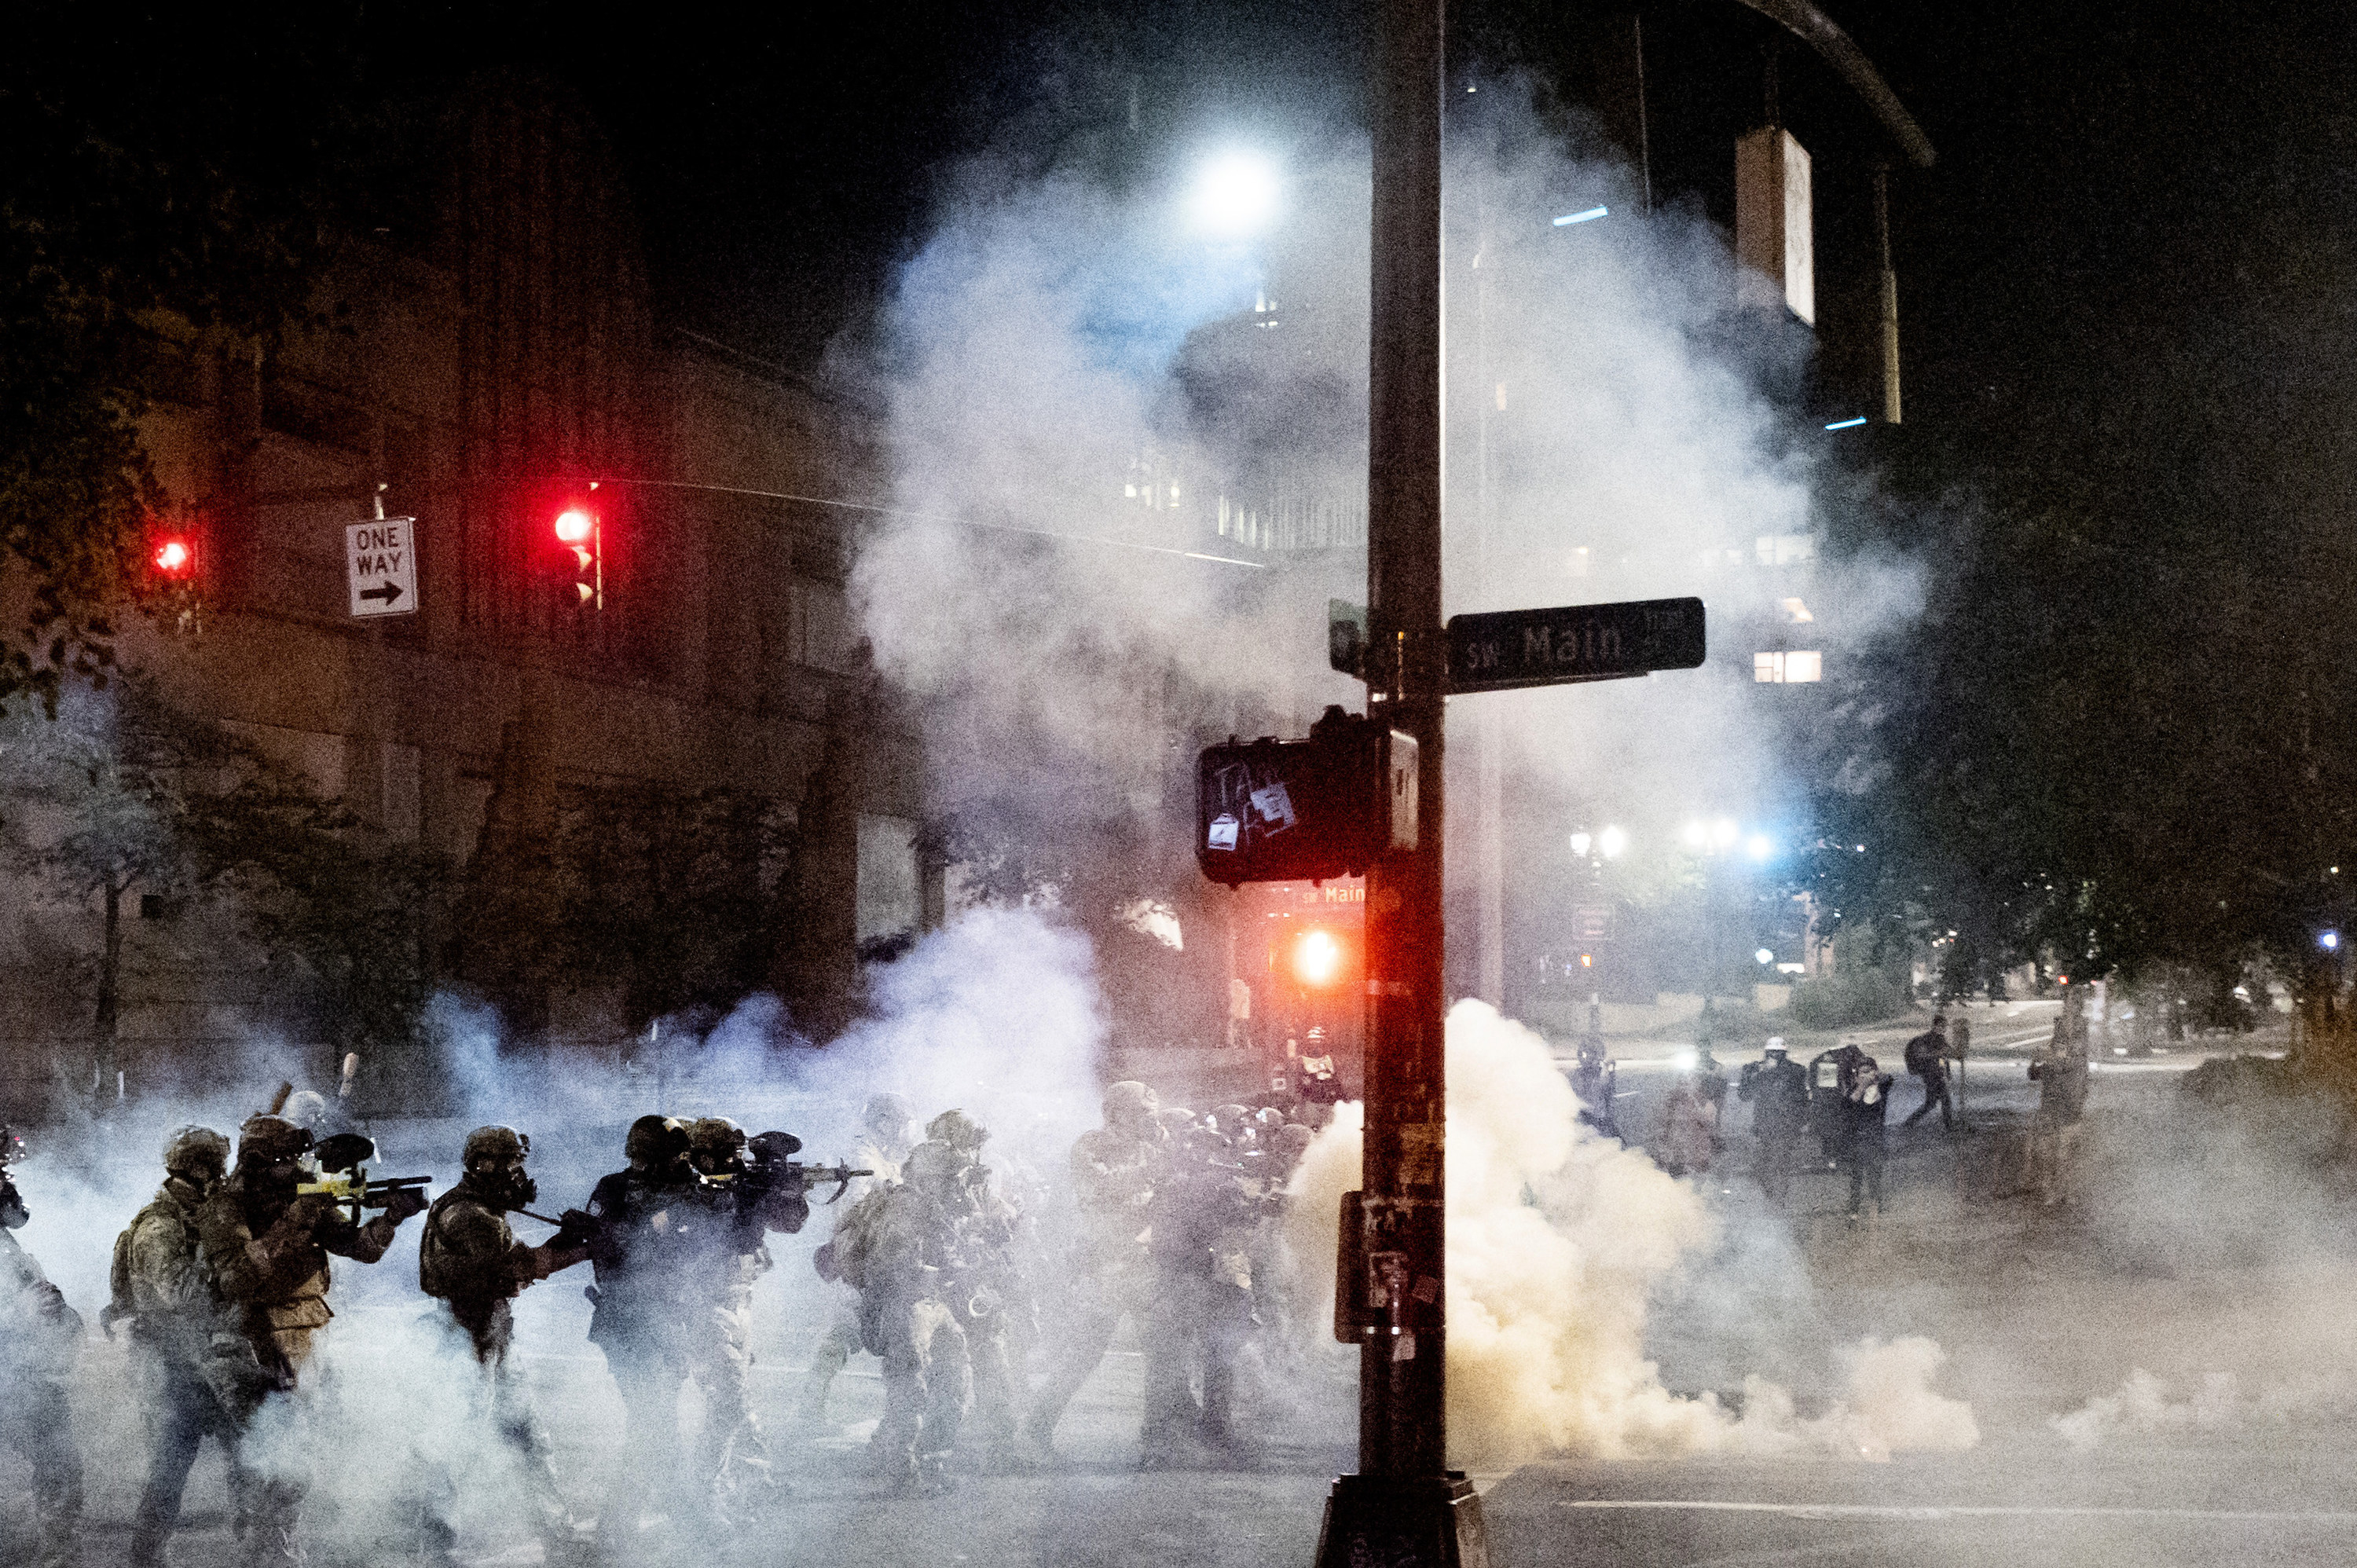 A group of federal agents walk through tear gas with crowd control munition devices that look like guns to disperse protesters